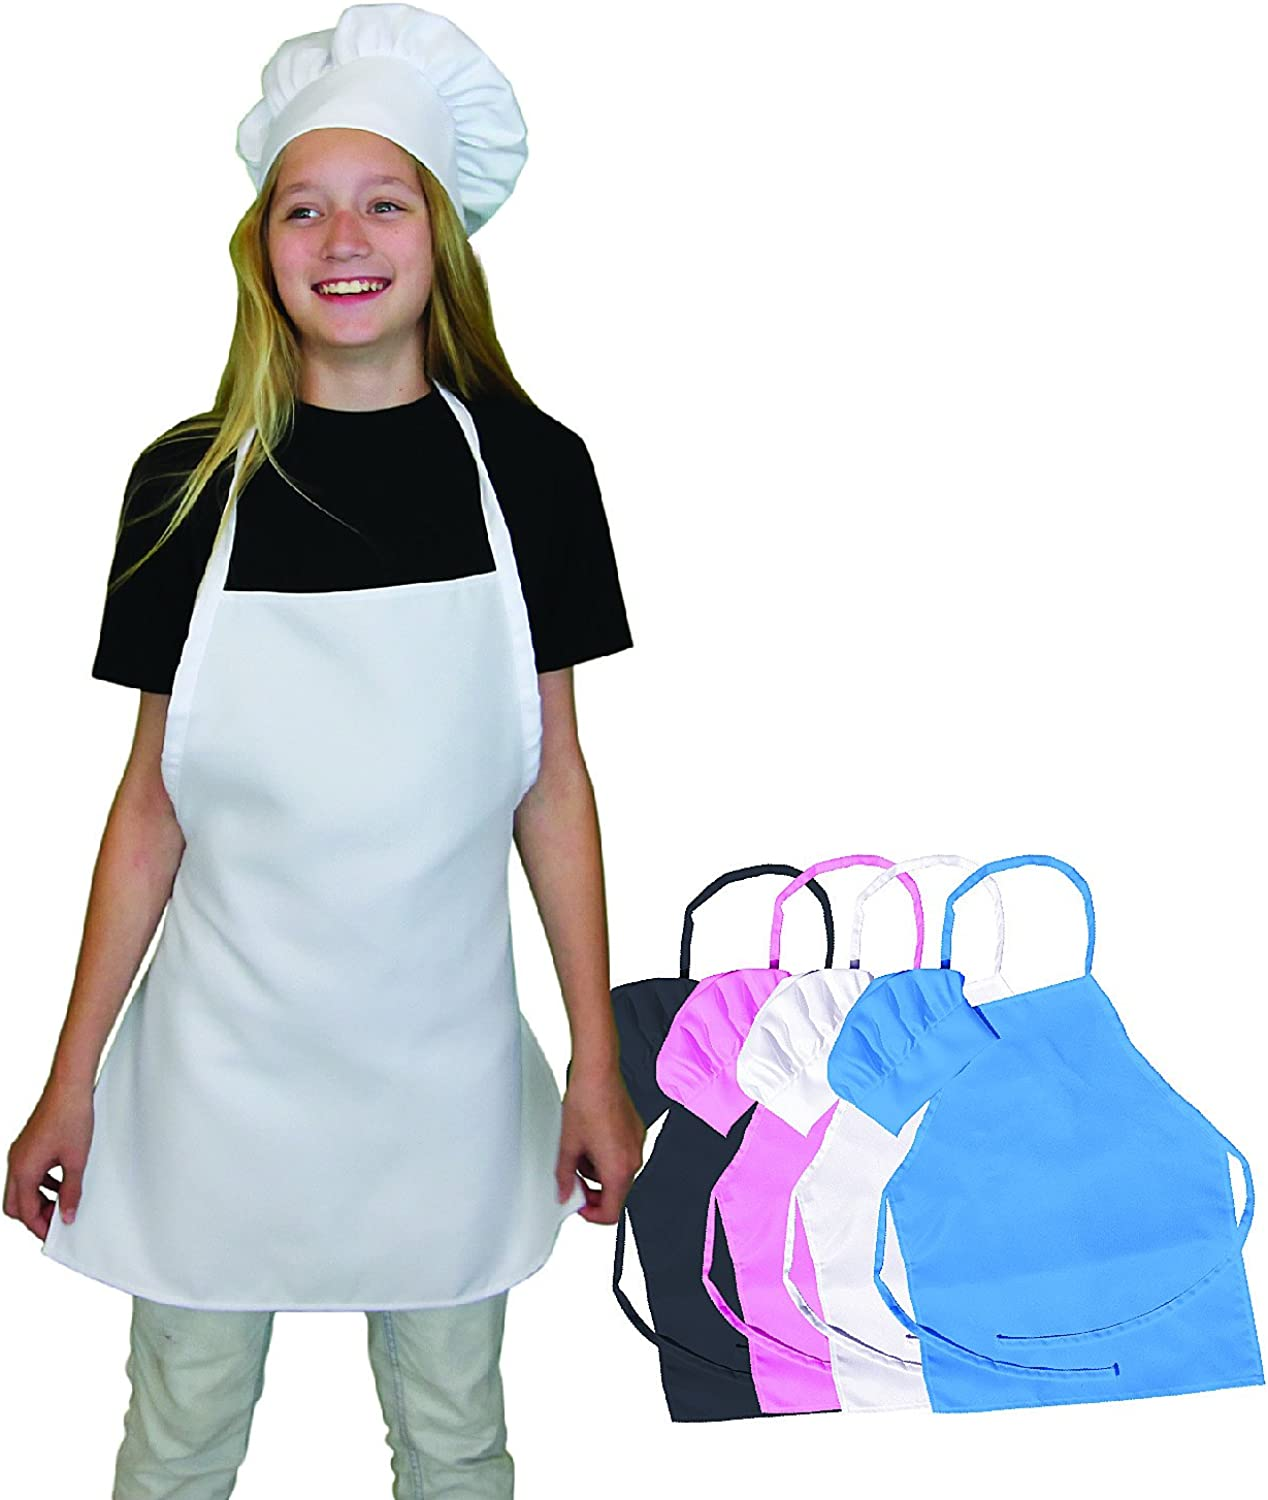 Kids Chef Hat and Apron Set, Children's Kitchen Cooking and Baking Wear Kit, Kids Size, Free eBook